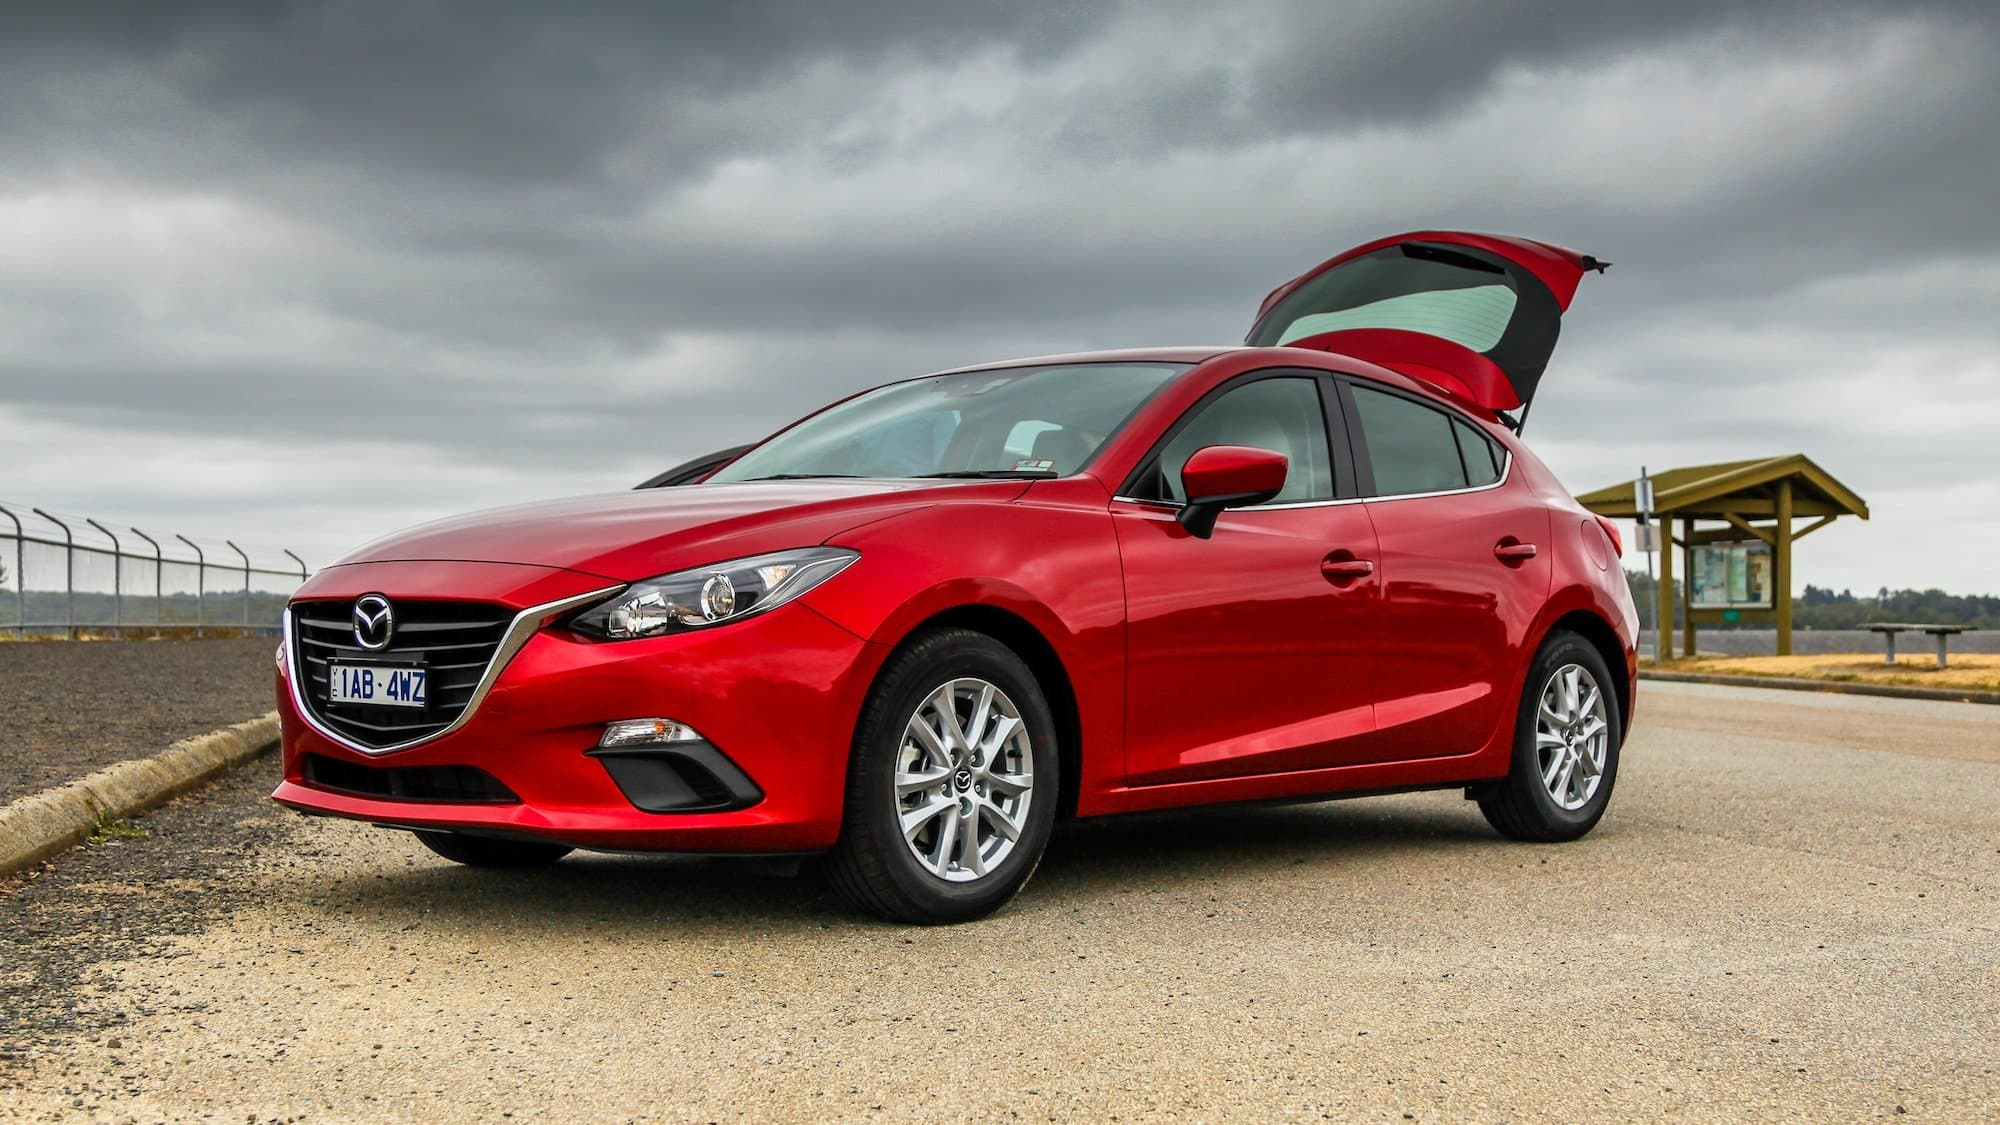 2014 Mazda 3 Bose Wiring Diagram : 2016 mazda mazda3 i sport new car models 2019 2020